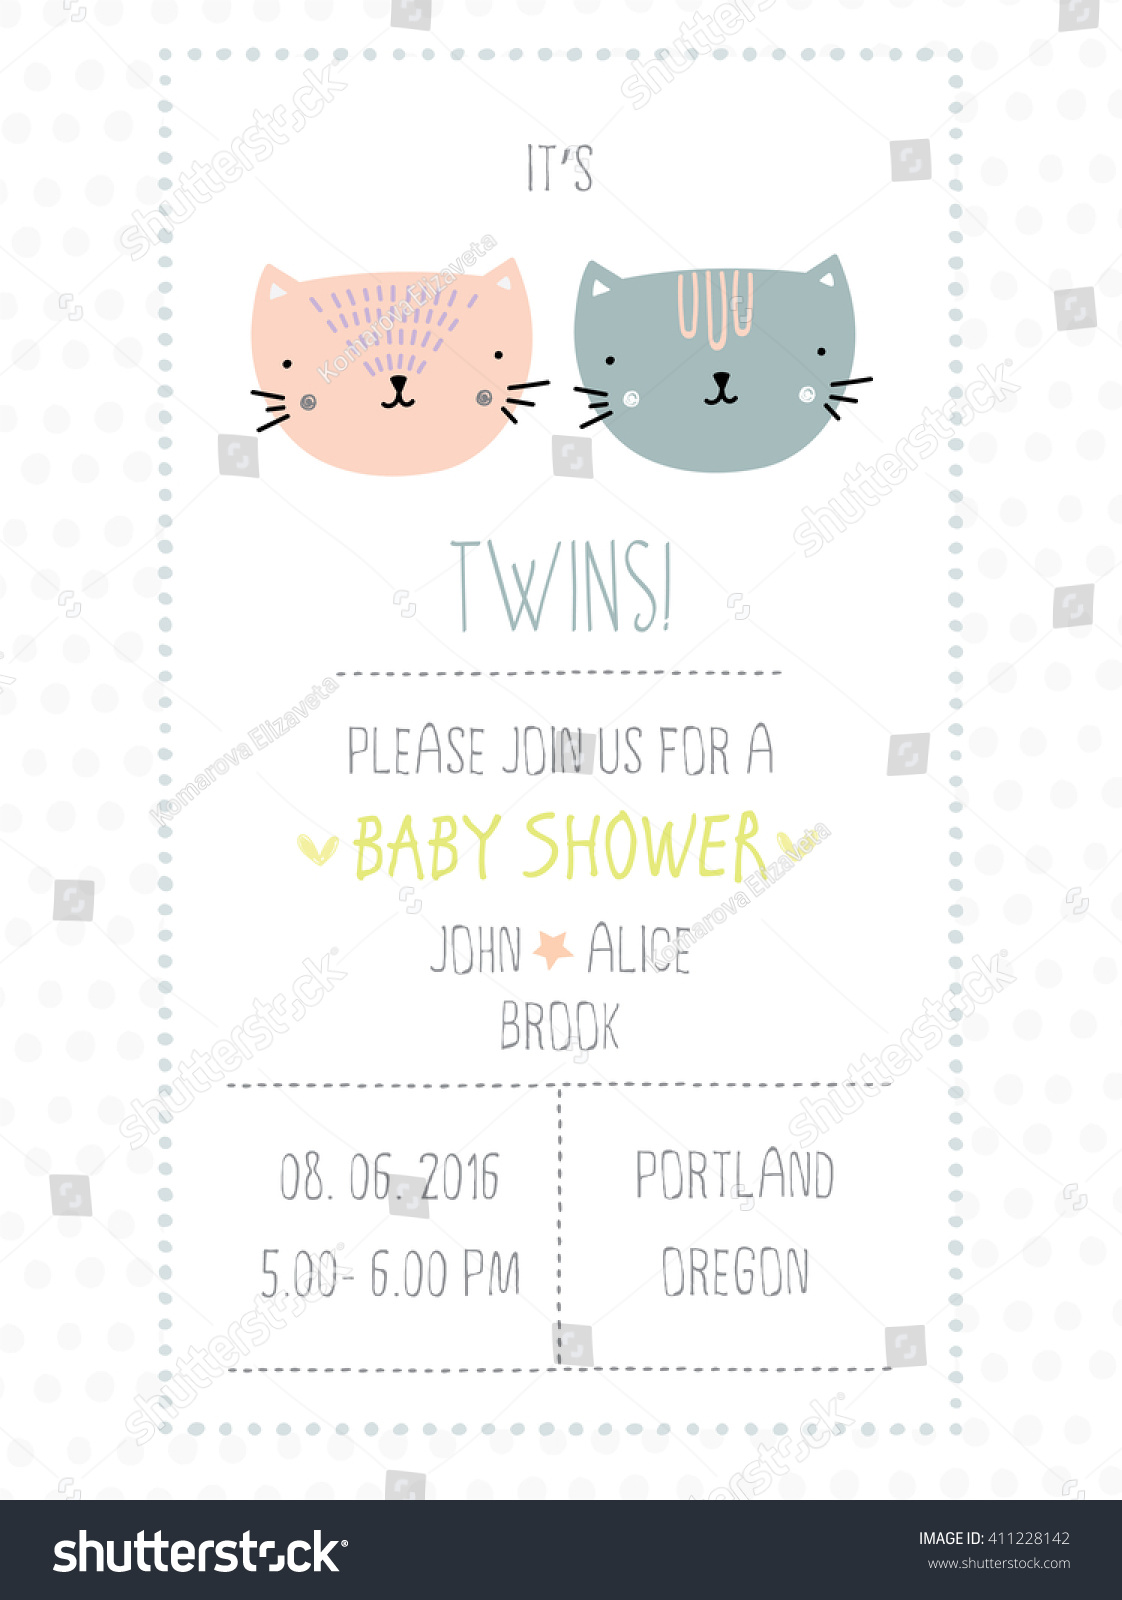 Baby Shower Invitation Twins Stock Vector 411228142 - Shutterstock